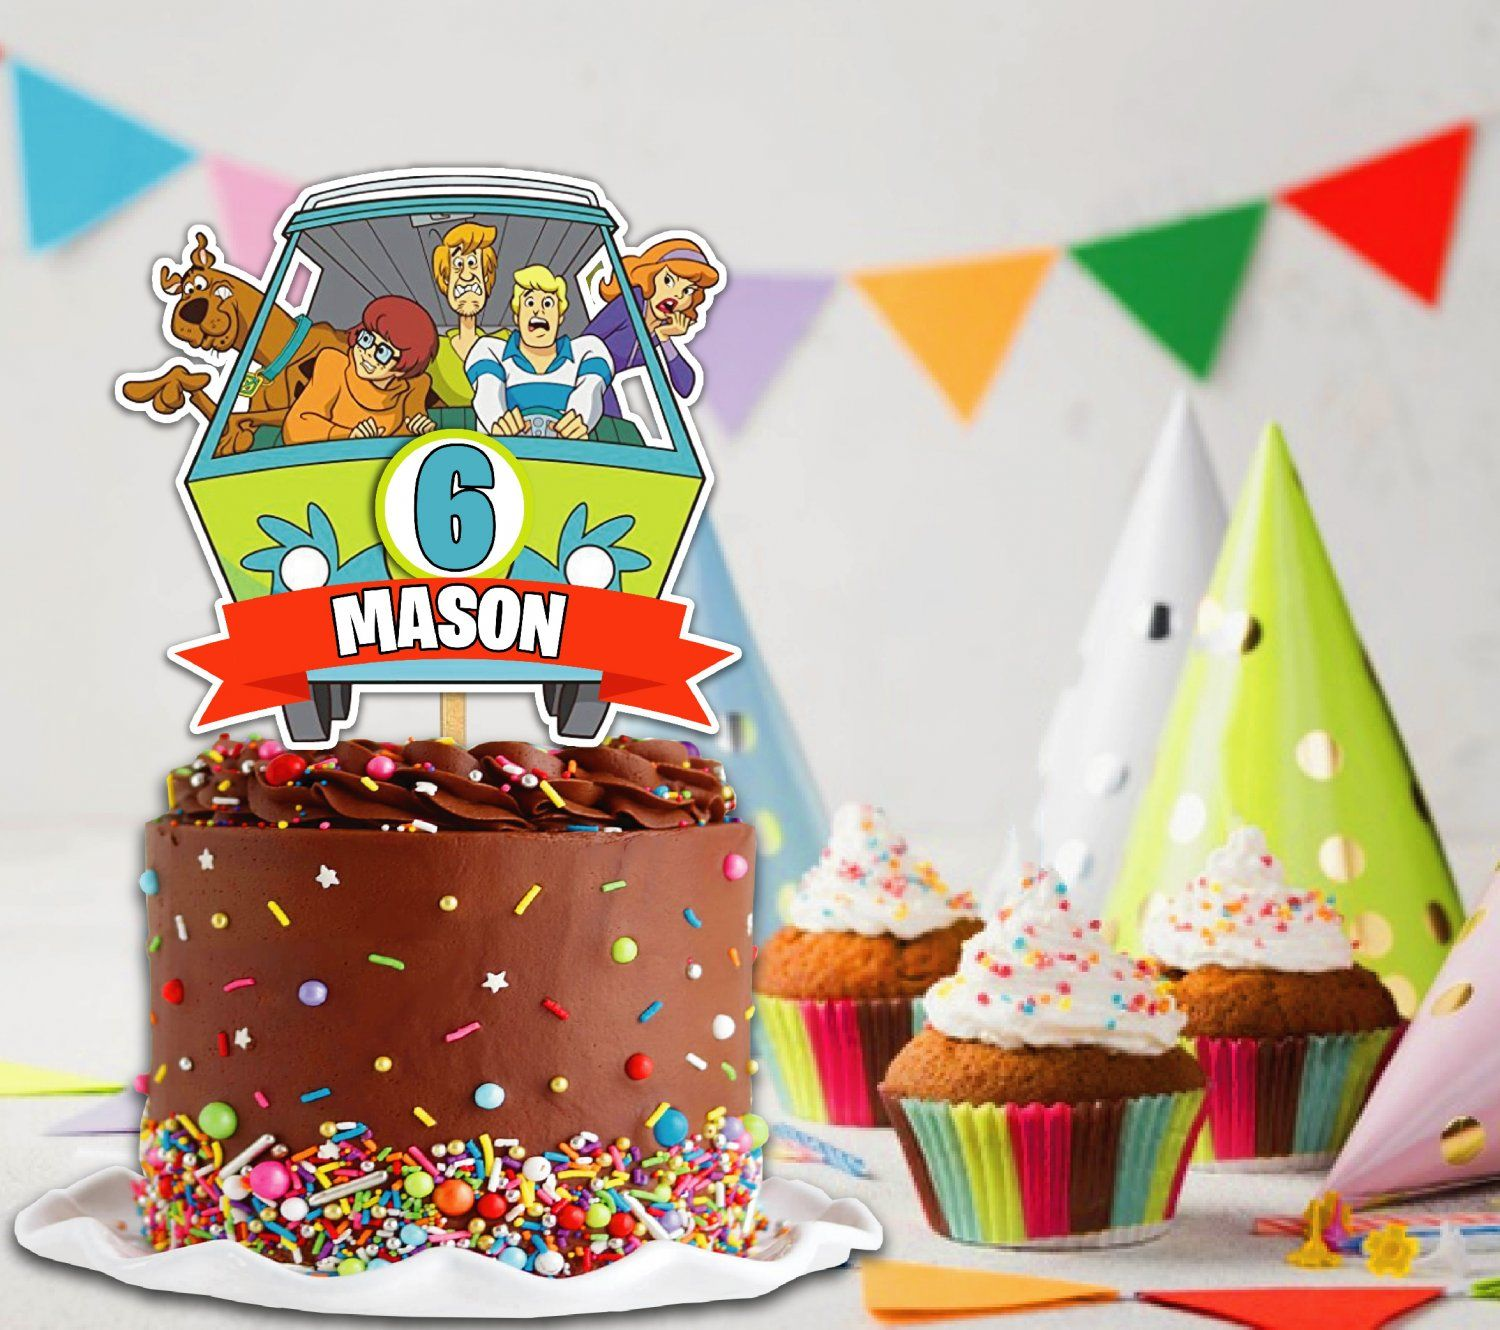 Scooby Doo Cake Topper Scooby Invitation Scooby Doo Party Cupcake Topper Digital File Roblox Cake Scooby Doo Cake Cake Toppers [ 1330 x 1500 Pixel ]